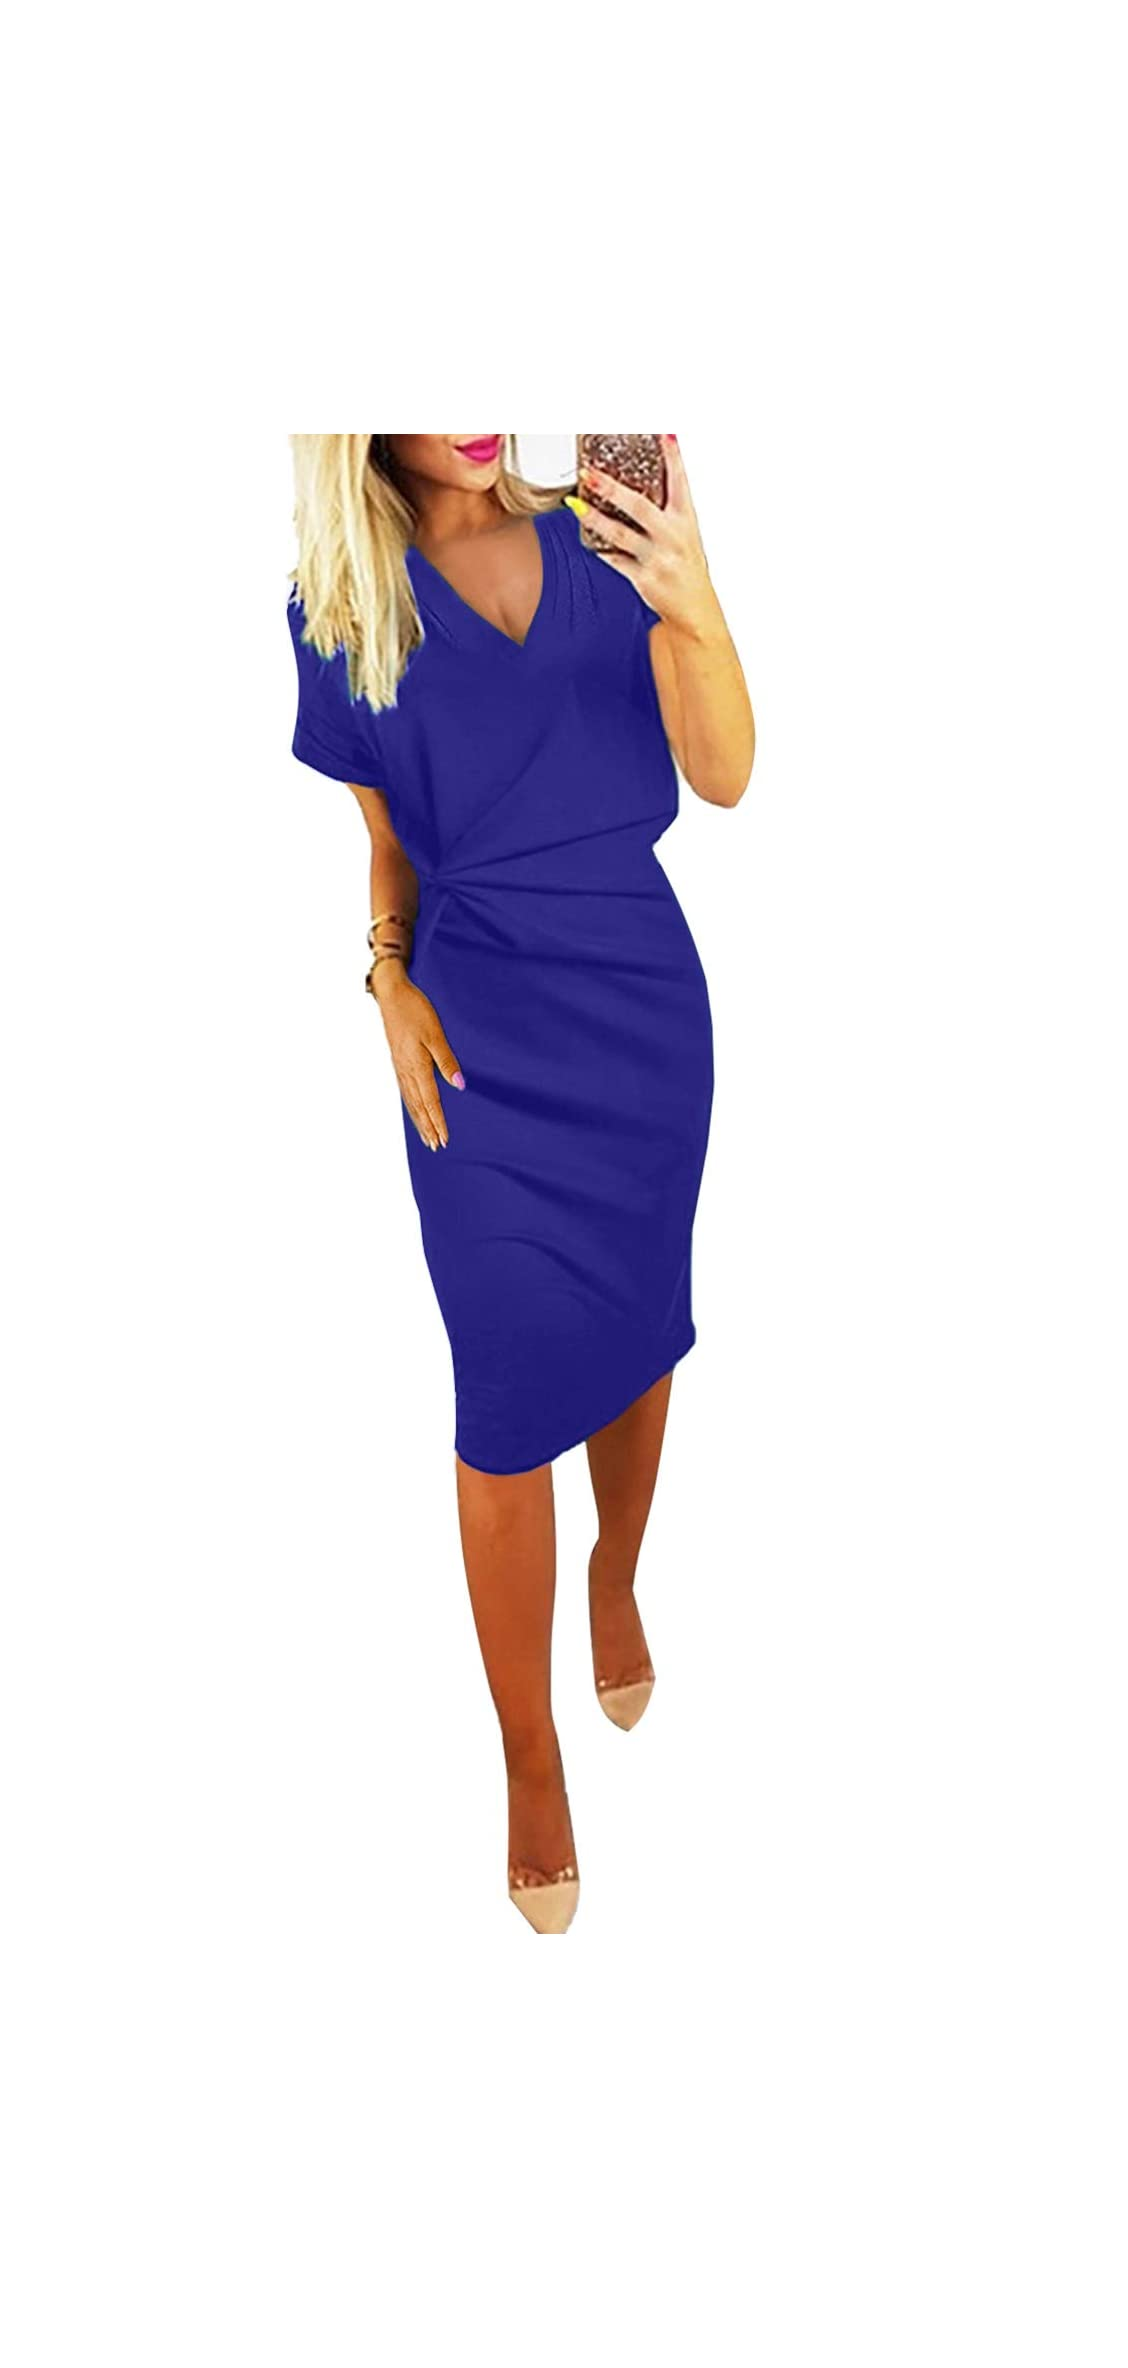 Women Casual Short Sleeve V Neck Midi Dress With Pockets